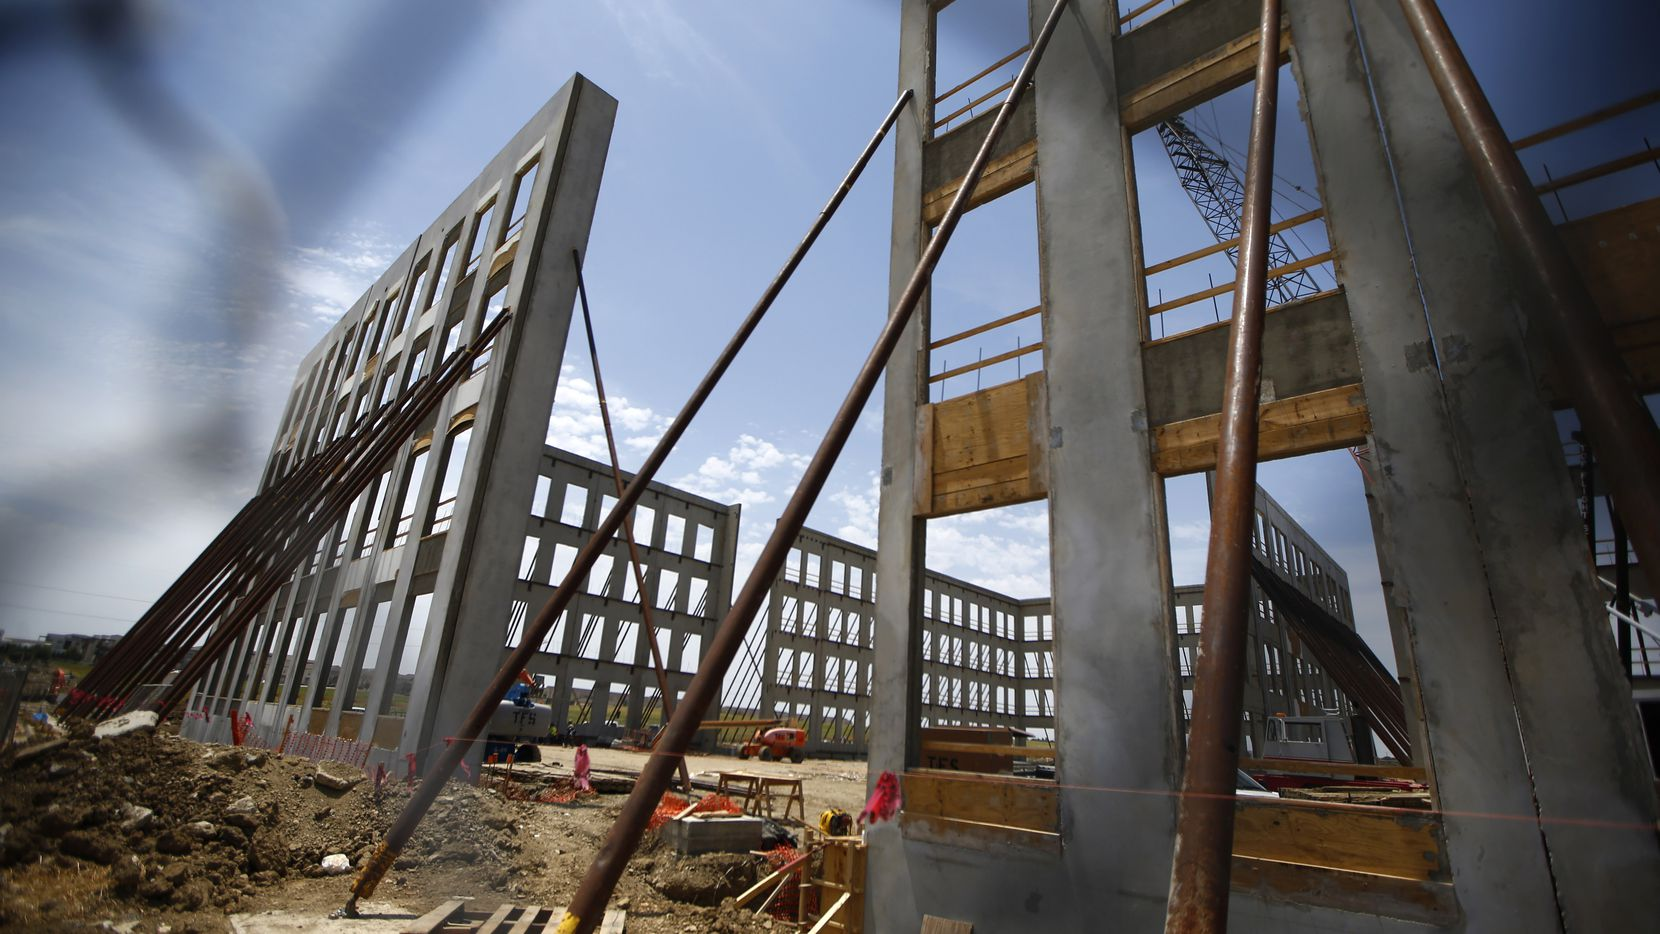 More than 5 million square feet of office space is going up in North Texas.